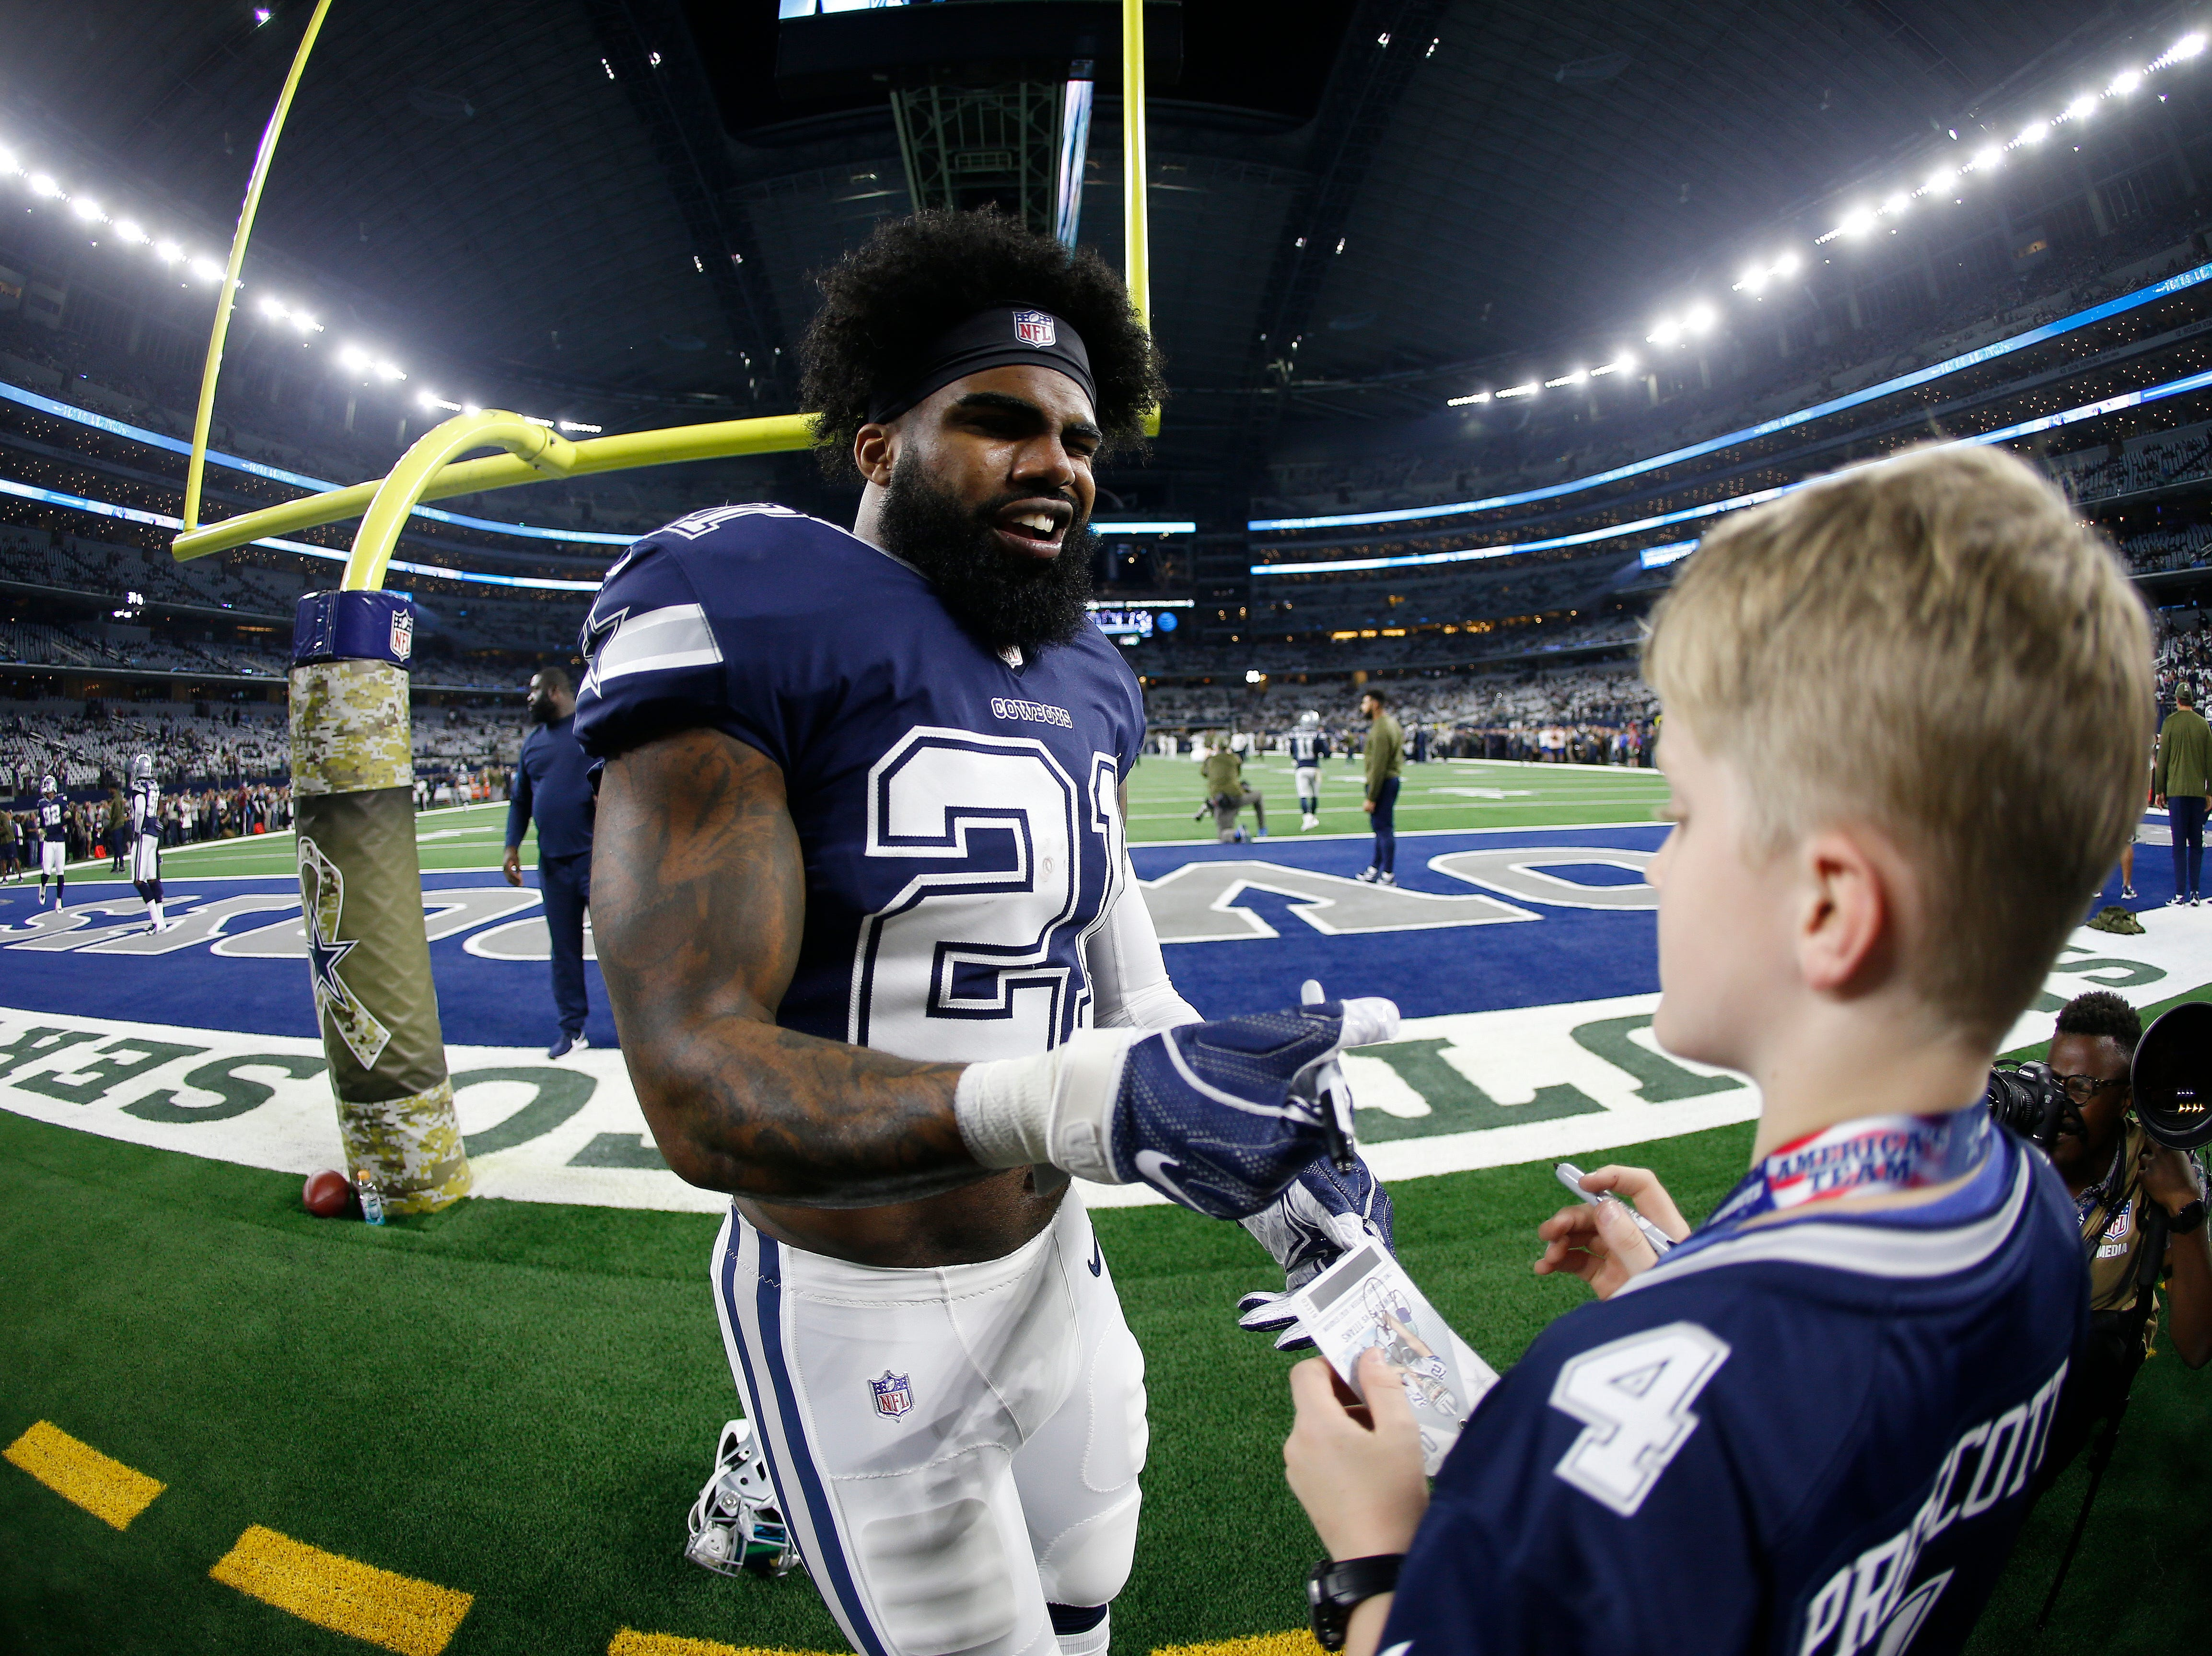 Dallas Cowboys running back Ezekiel Elliott (21) signs an autograph for a child before the first half of an NFL football game between the Dallas Cowboys and the Tennessee Titans, Monday, Nov. 5, 2018, in Arlington, Texas.